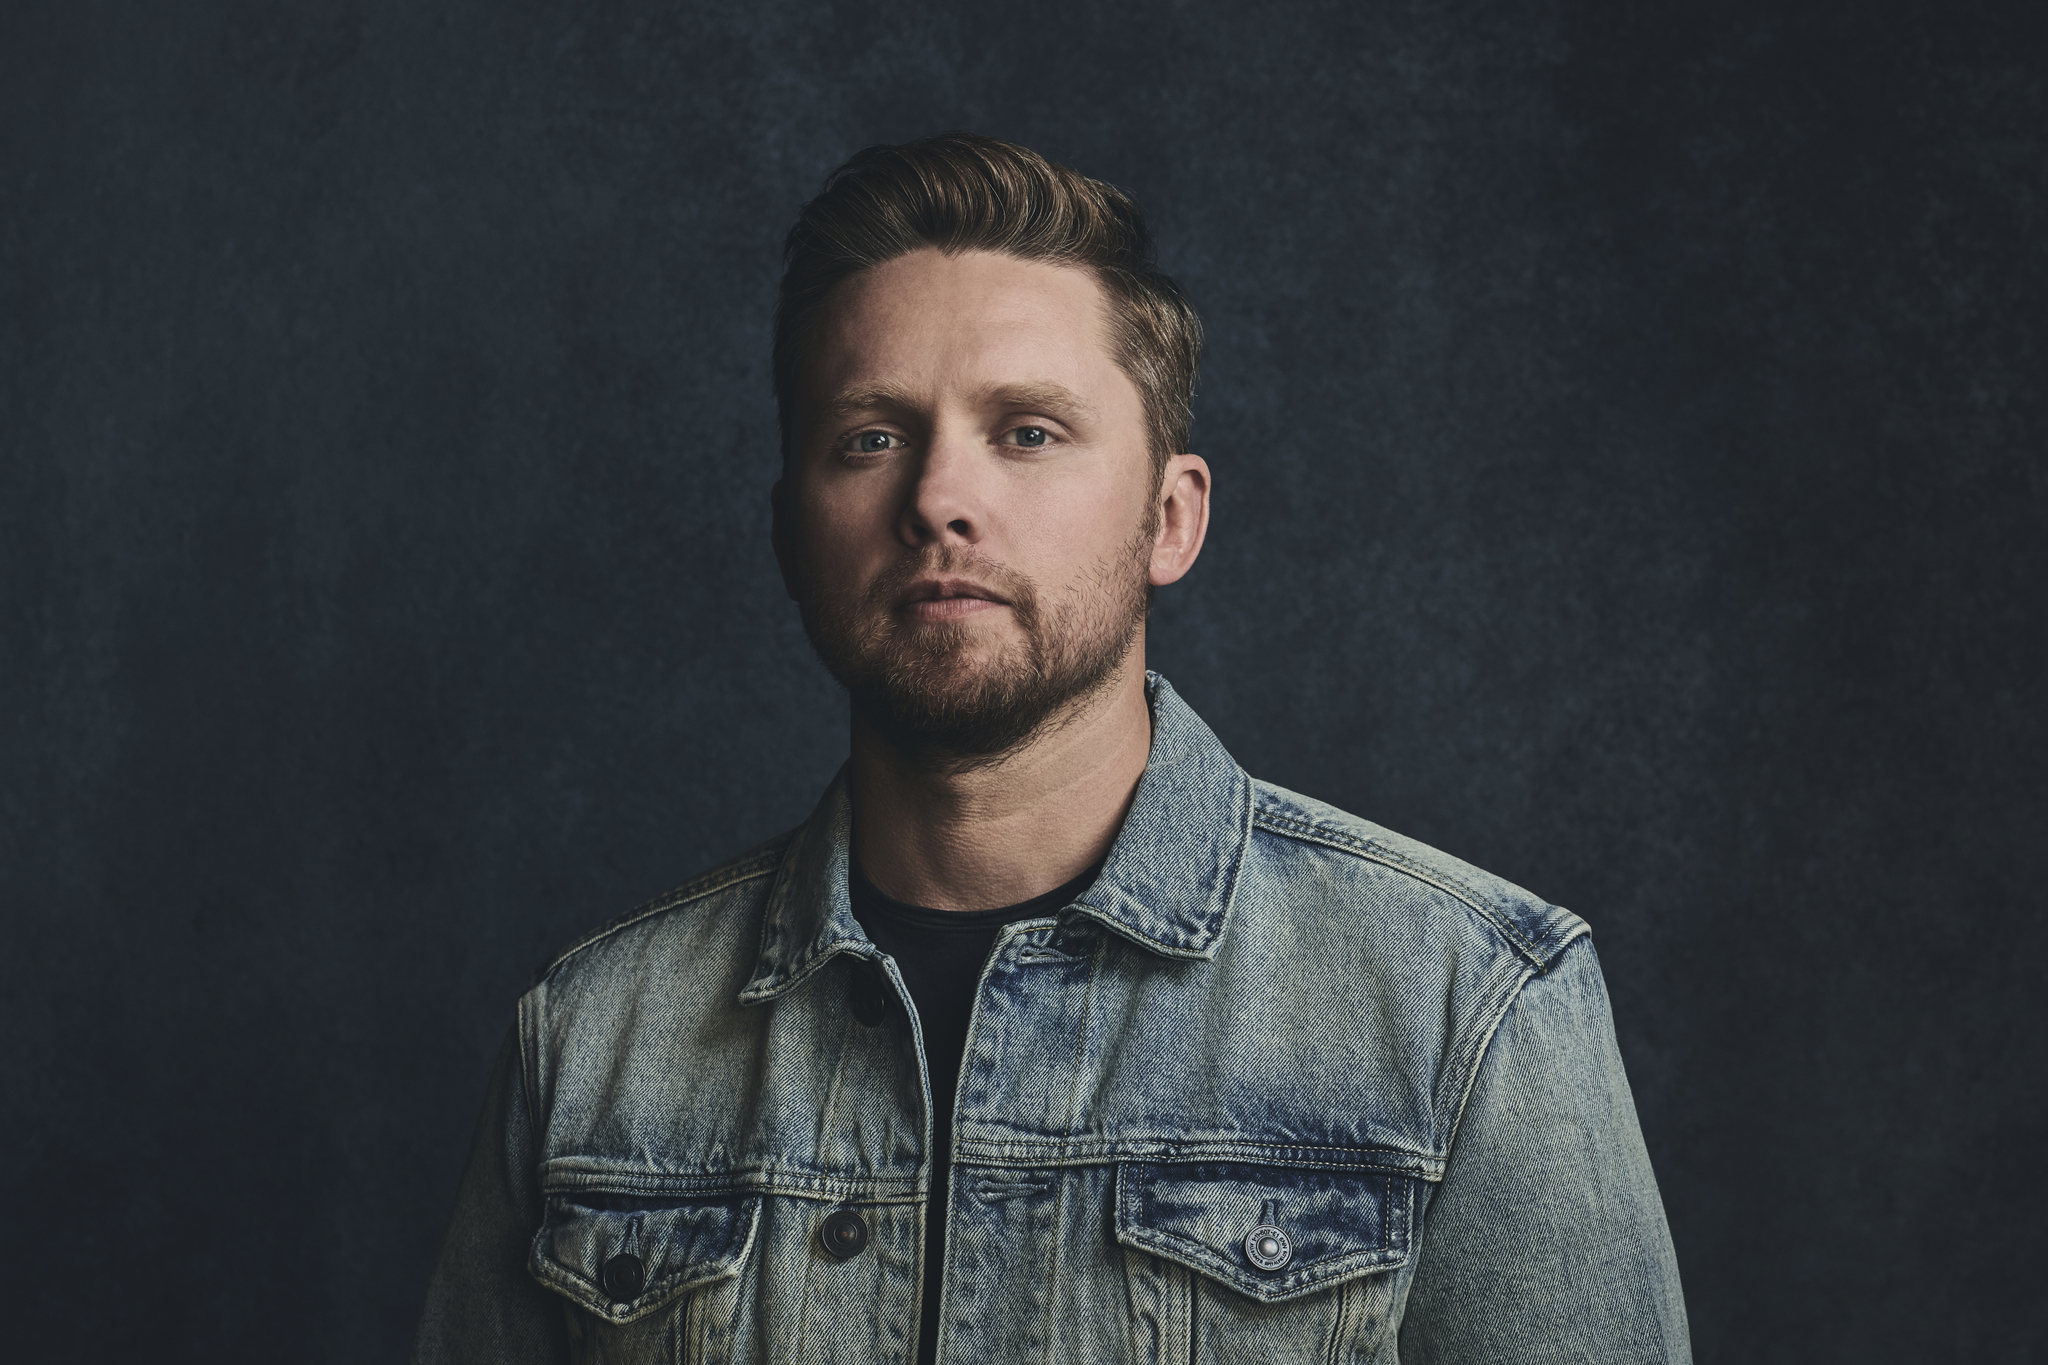 JAMESON RODGERS' DEBUT ALBUM BET YOU'RE FROM A SMALL TOWN AVAILABLE NOW